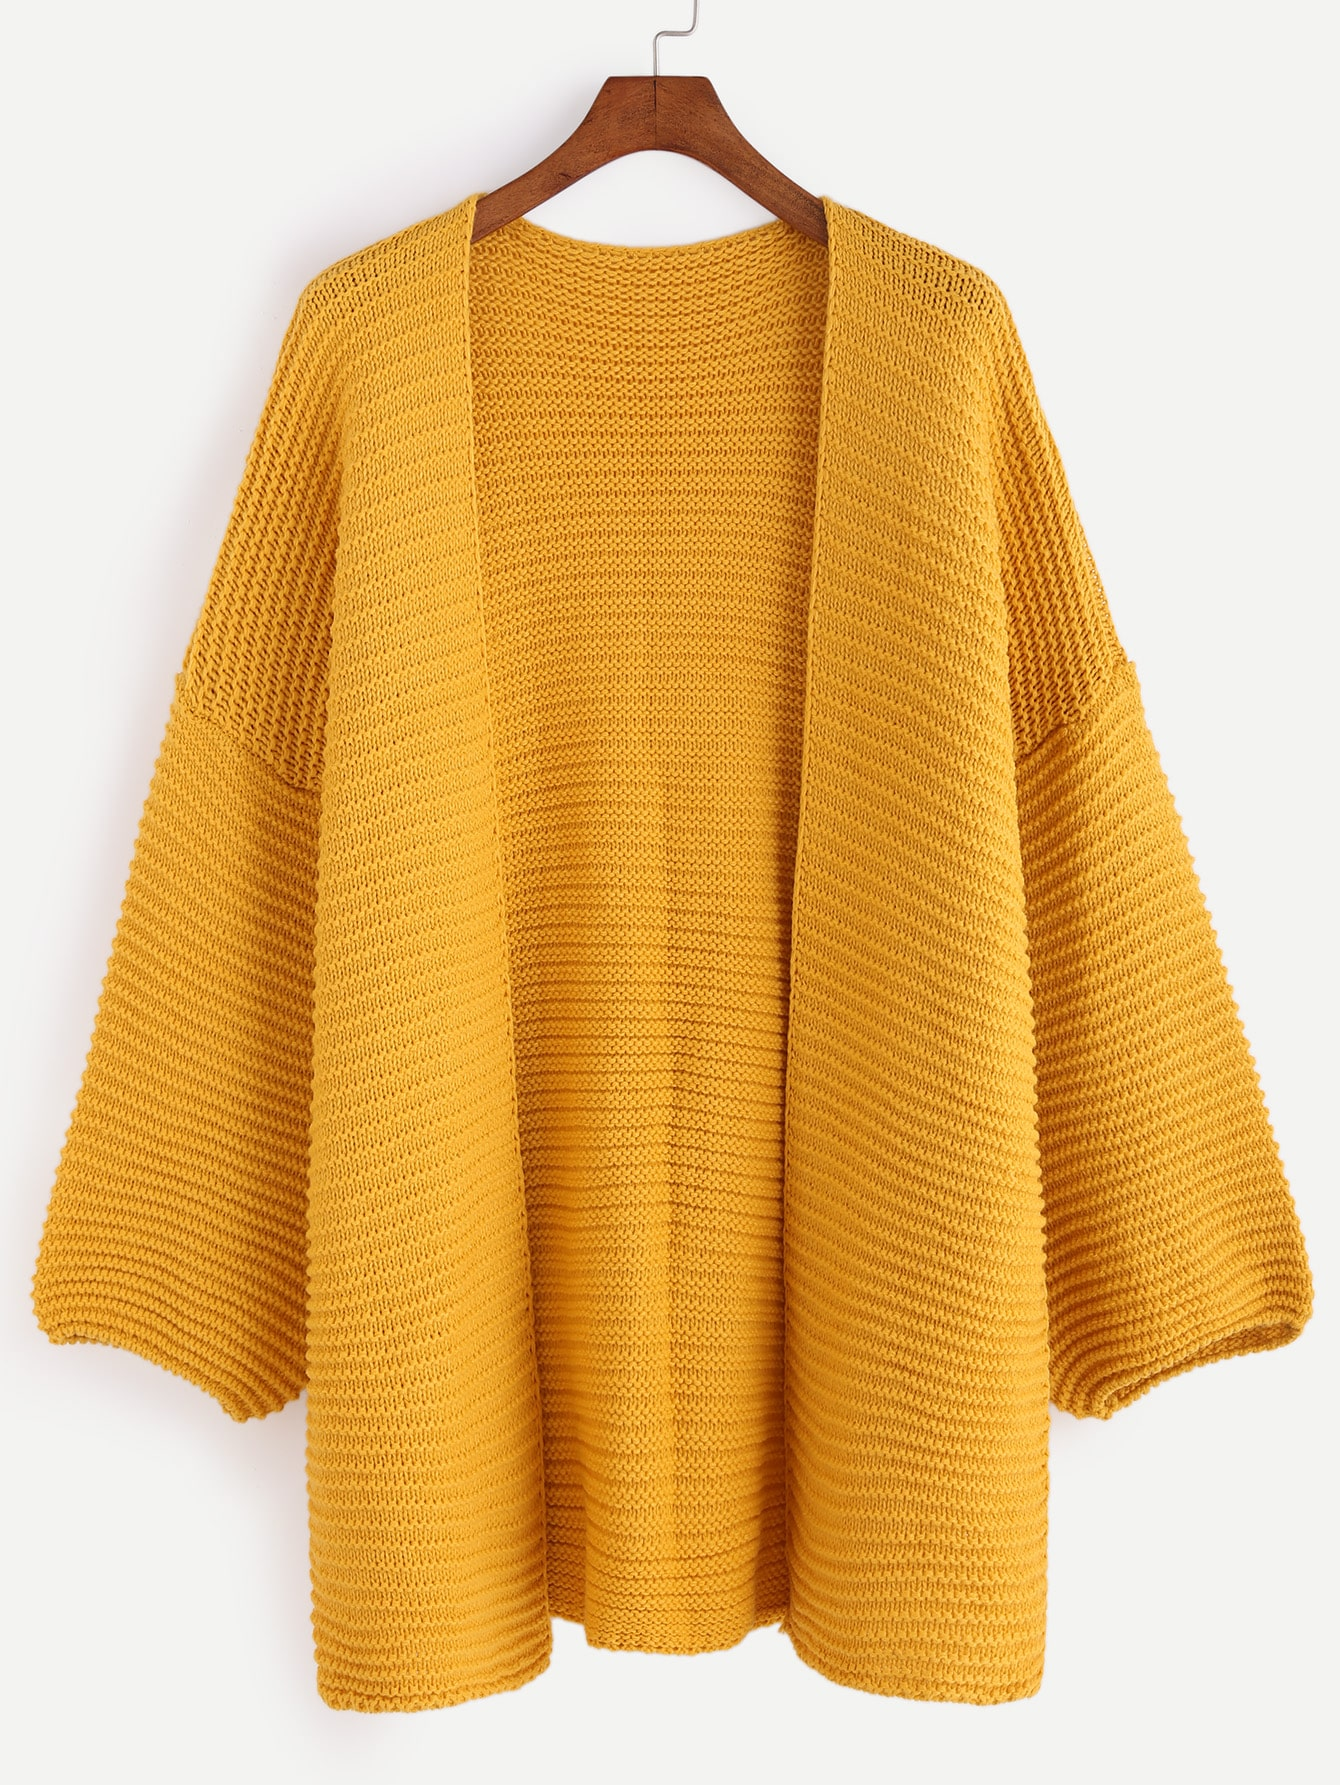 Yellow Drop Shoulder Lantern Sleeve Slit Sweater Coat sweater161013453